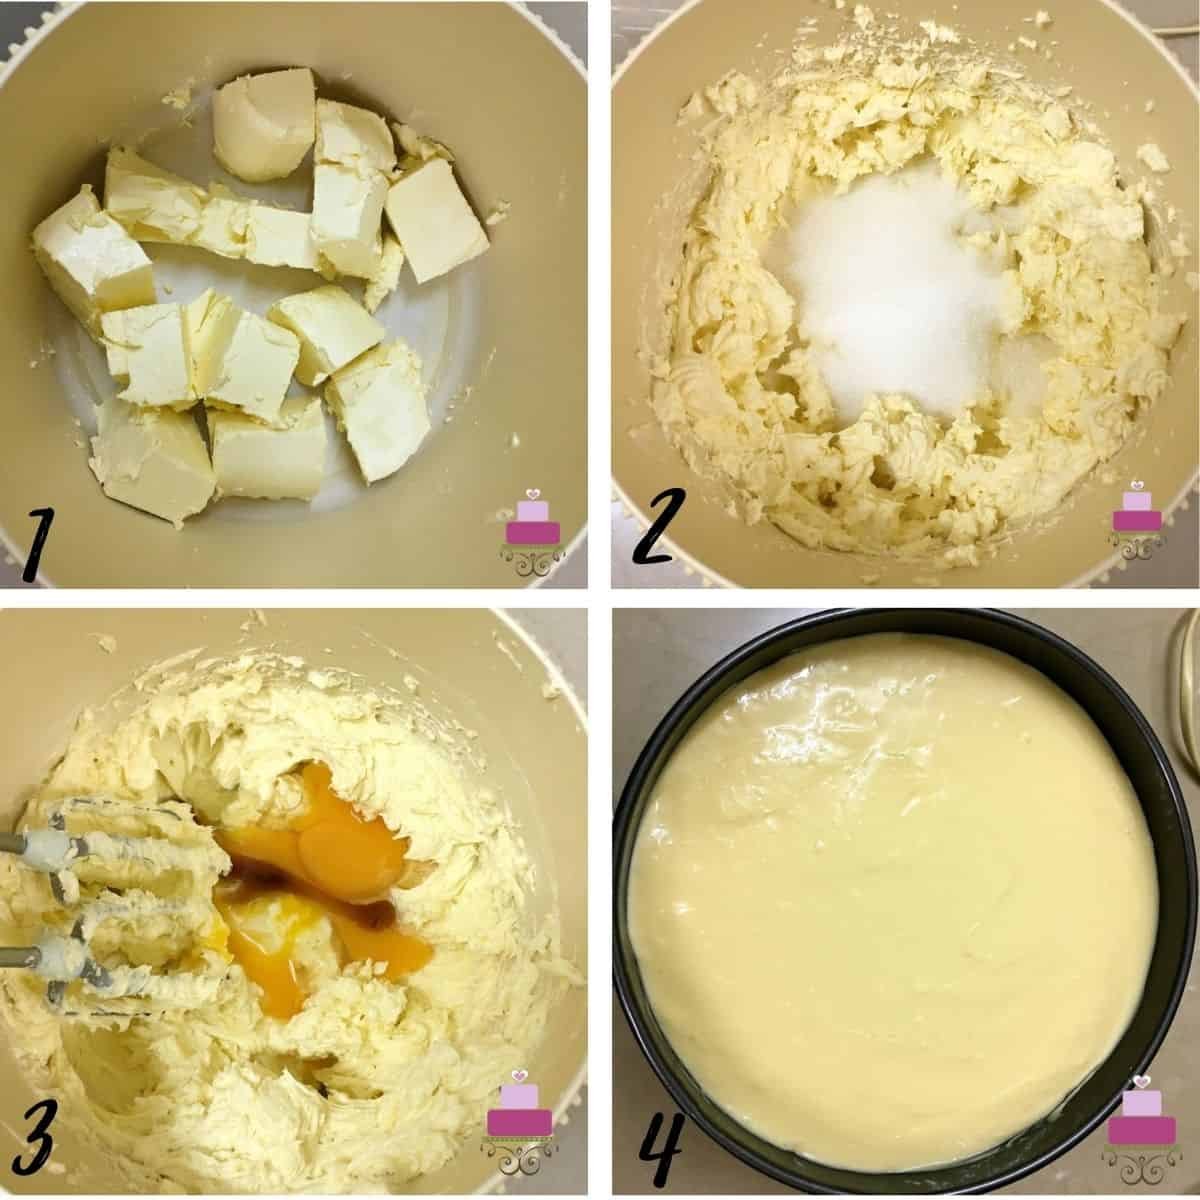 A poster of 4 images showing how to mix easy cheesecake batter